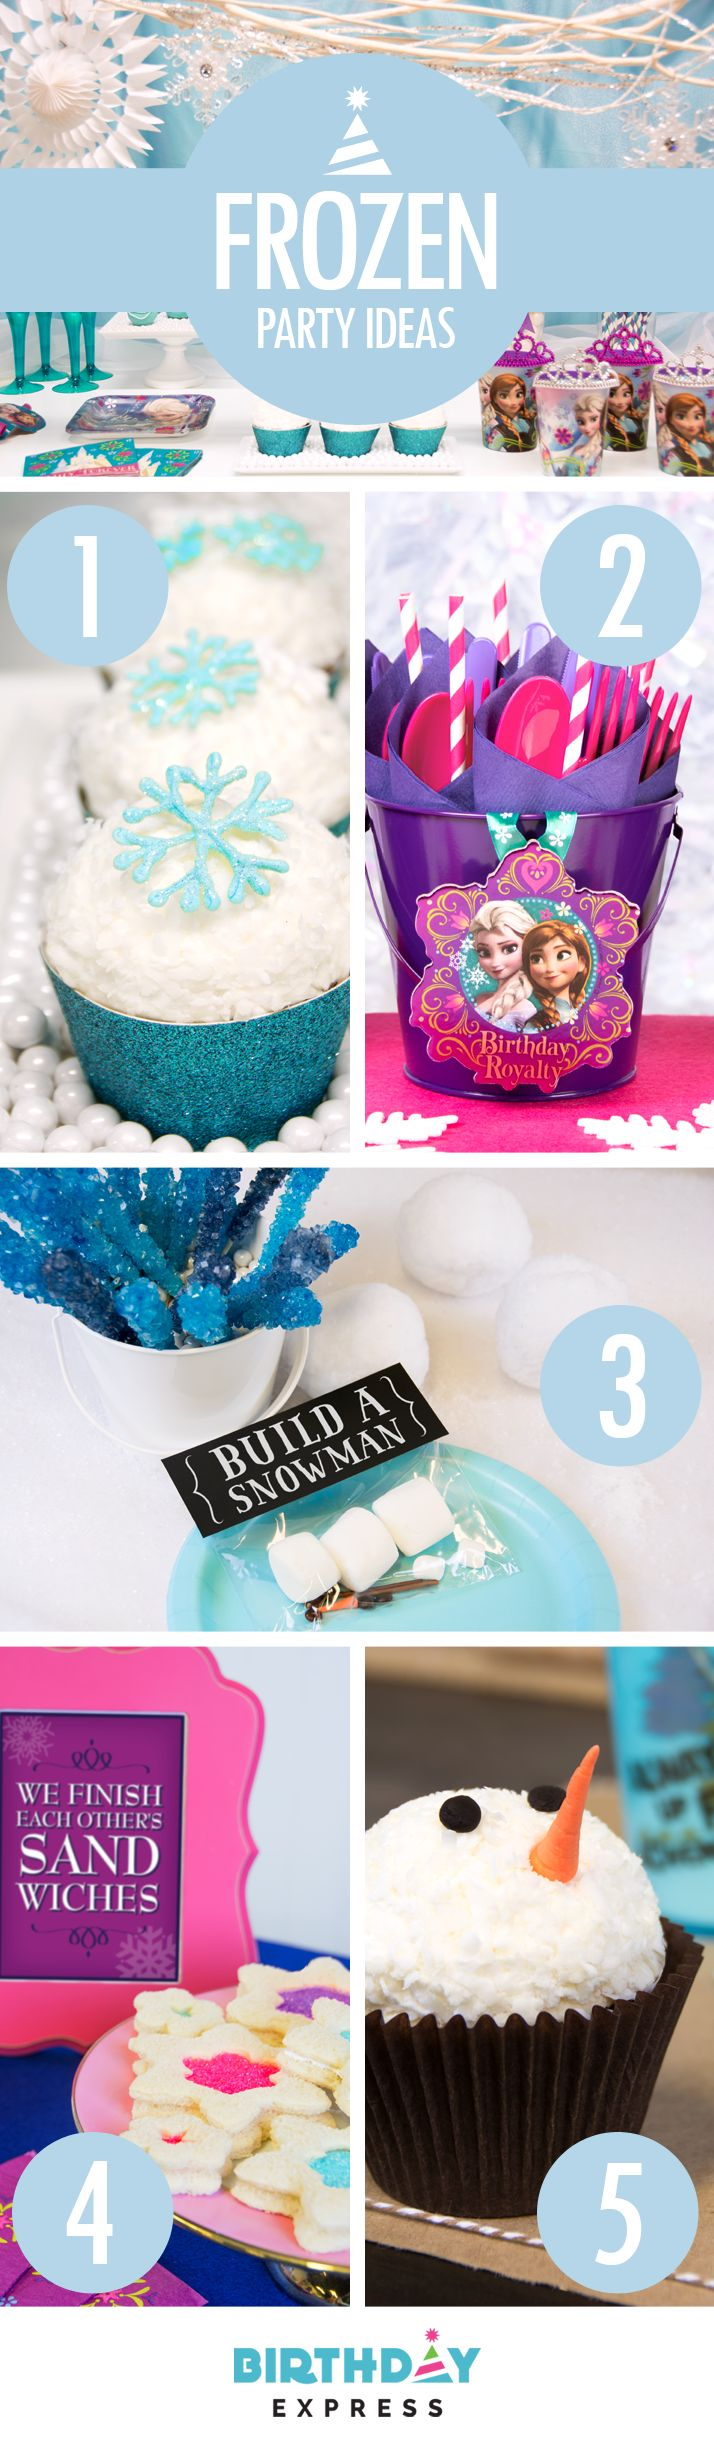 Throw the perfect Disney Frozen birthday party with Birthday Express' Top 5 Frozen party ideas! (1) Snowflake Cupcakes. (2) Use tiny purple pails as a fun way to display Frozen party favors or treats. (3) Do you want to build a snowman? Marshmallows and toothpicks will do the trick! (4) Star shaped cookie cutters make six-sided snowflake sandwiches. (5) Make snowman cupcakes that look just like Olaf with orange gum paste and chocolate chip eyes.